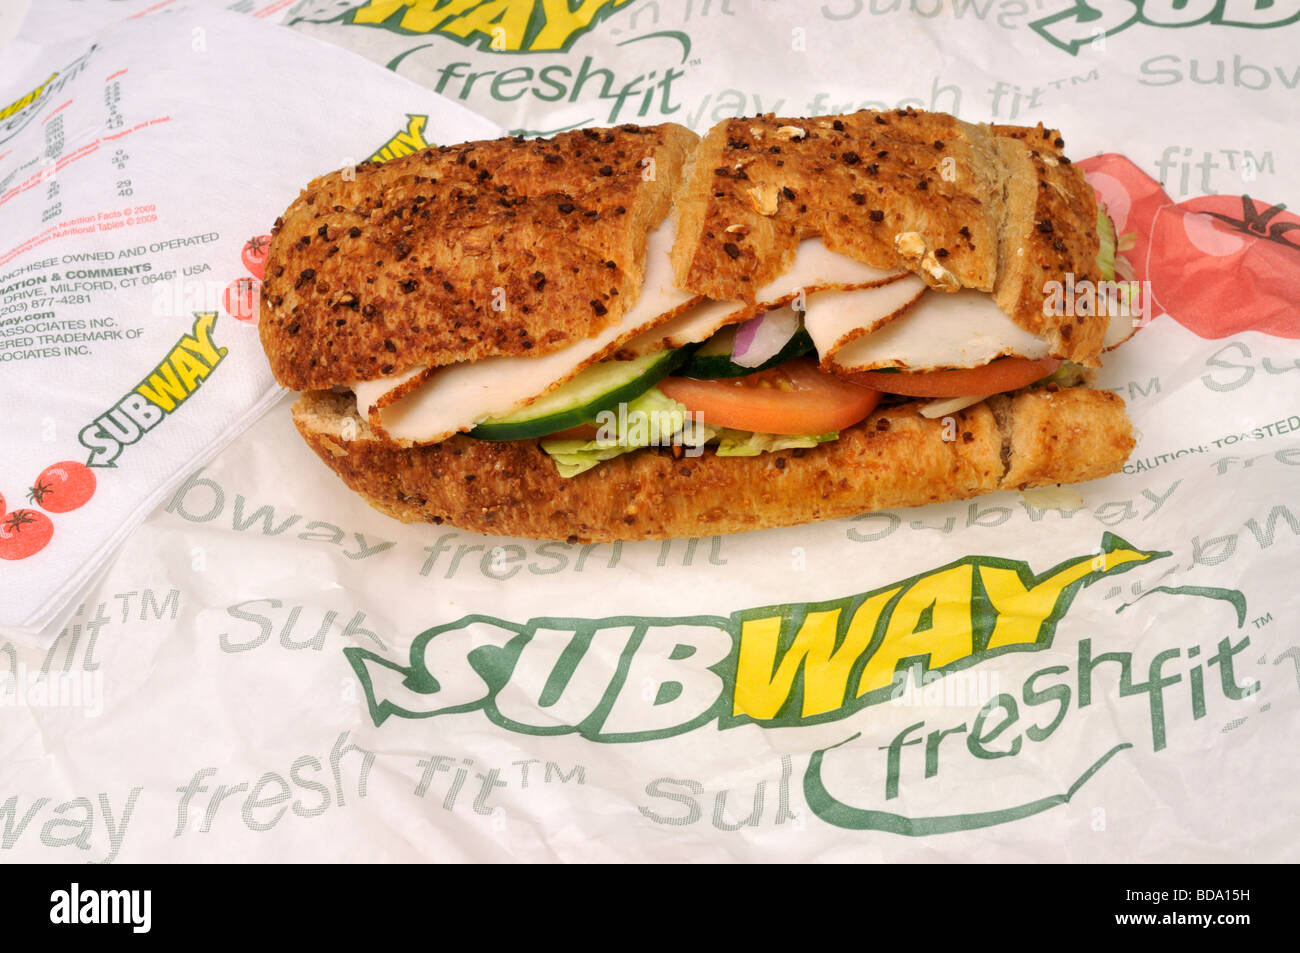 Subway turkey sub sandwich with cucumber lettuce tomato and onion on wrapper with logo USA. - Stock Image